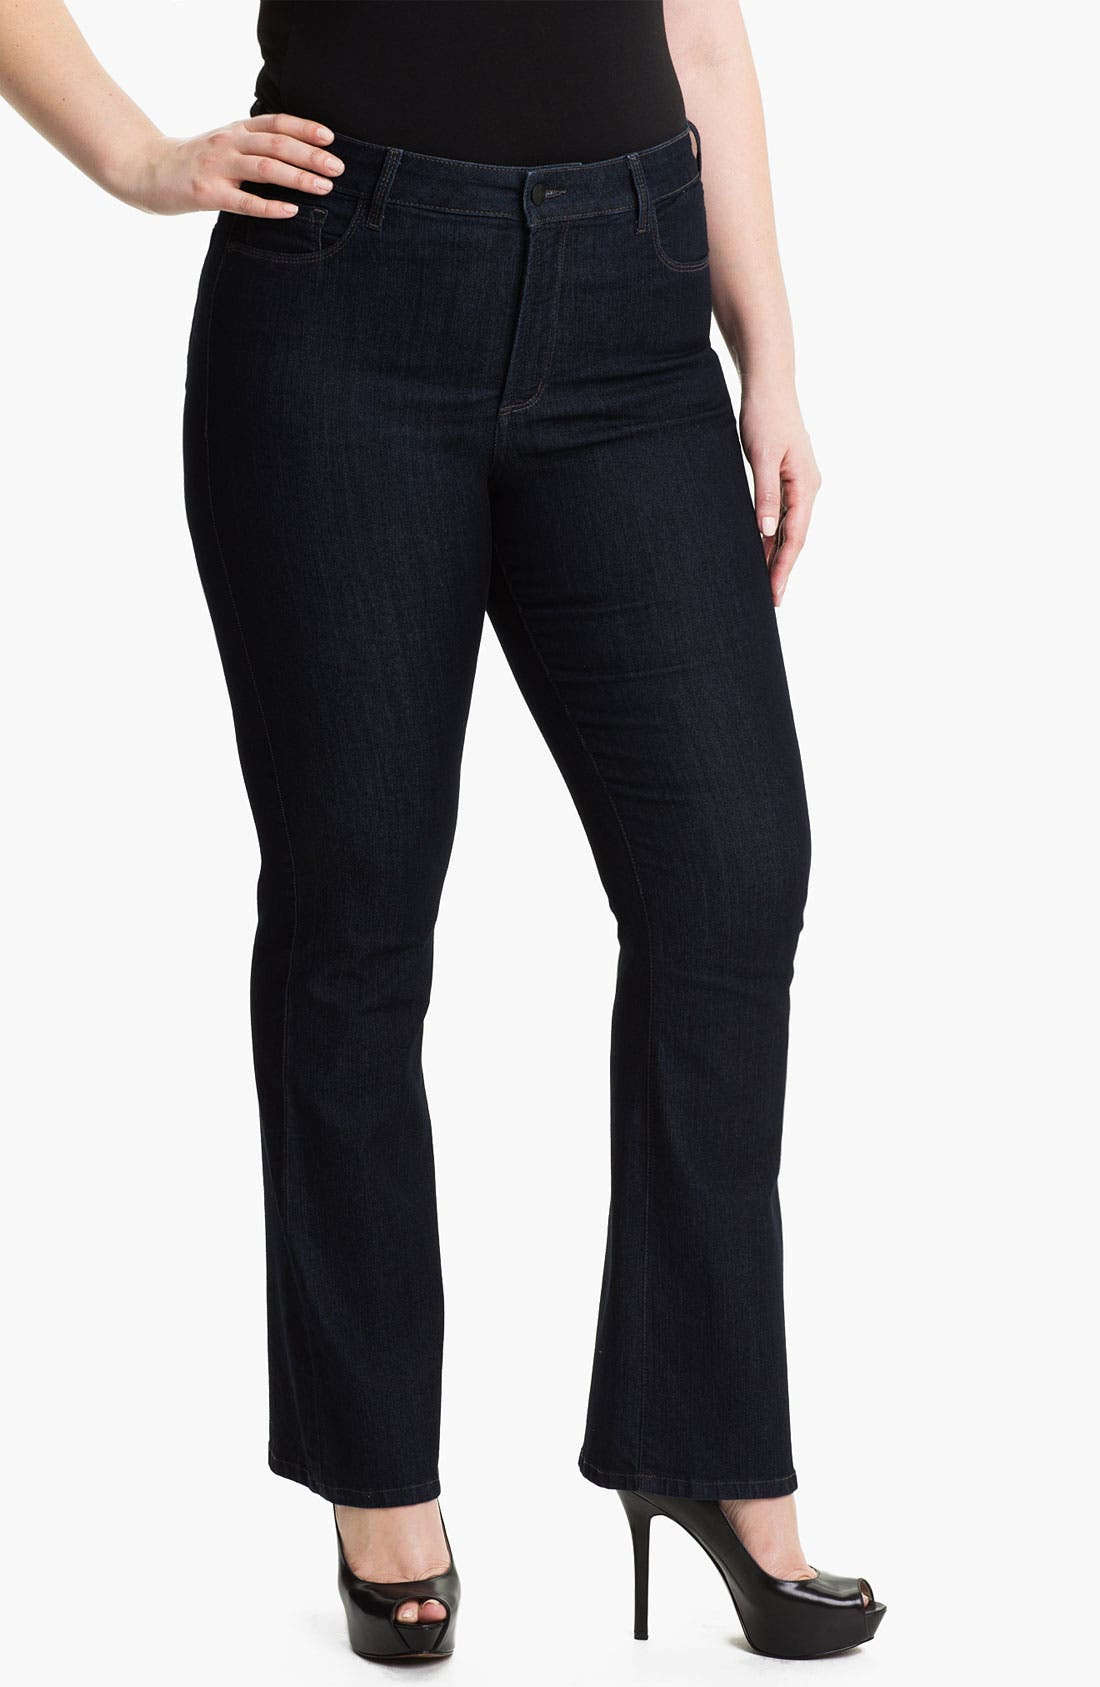 Alternate Image 1 Selected - NYDJ 'Barbara' Embroidered Bootcut Jeans (Plus)